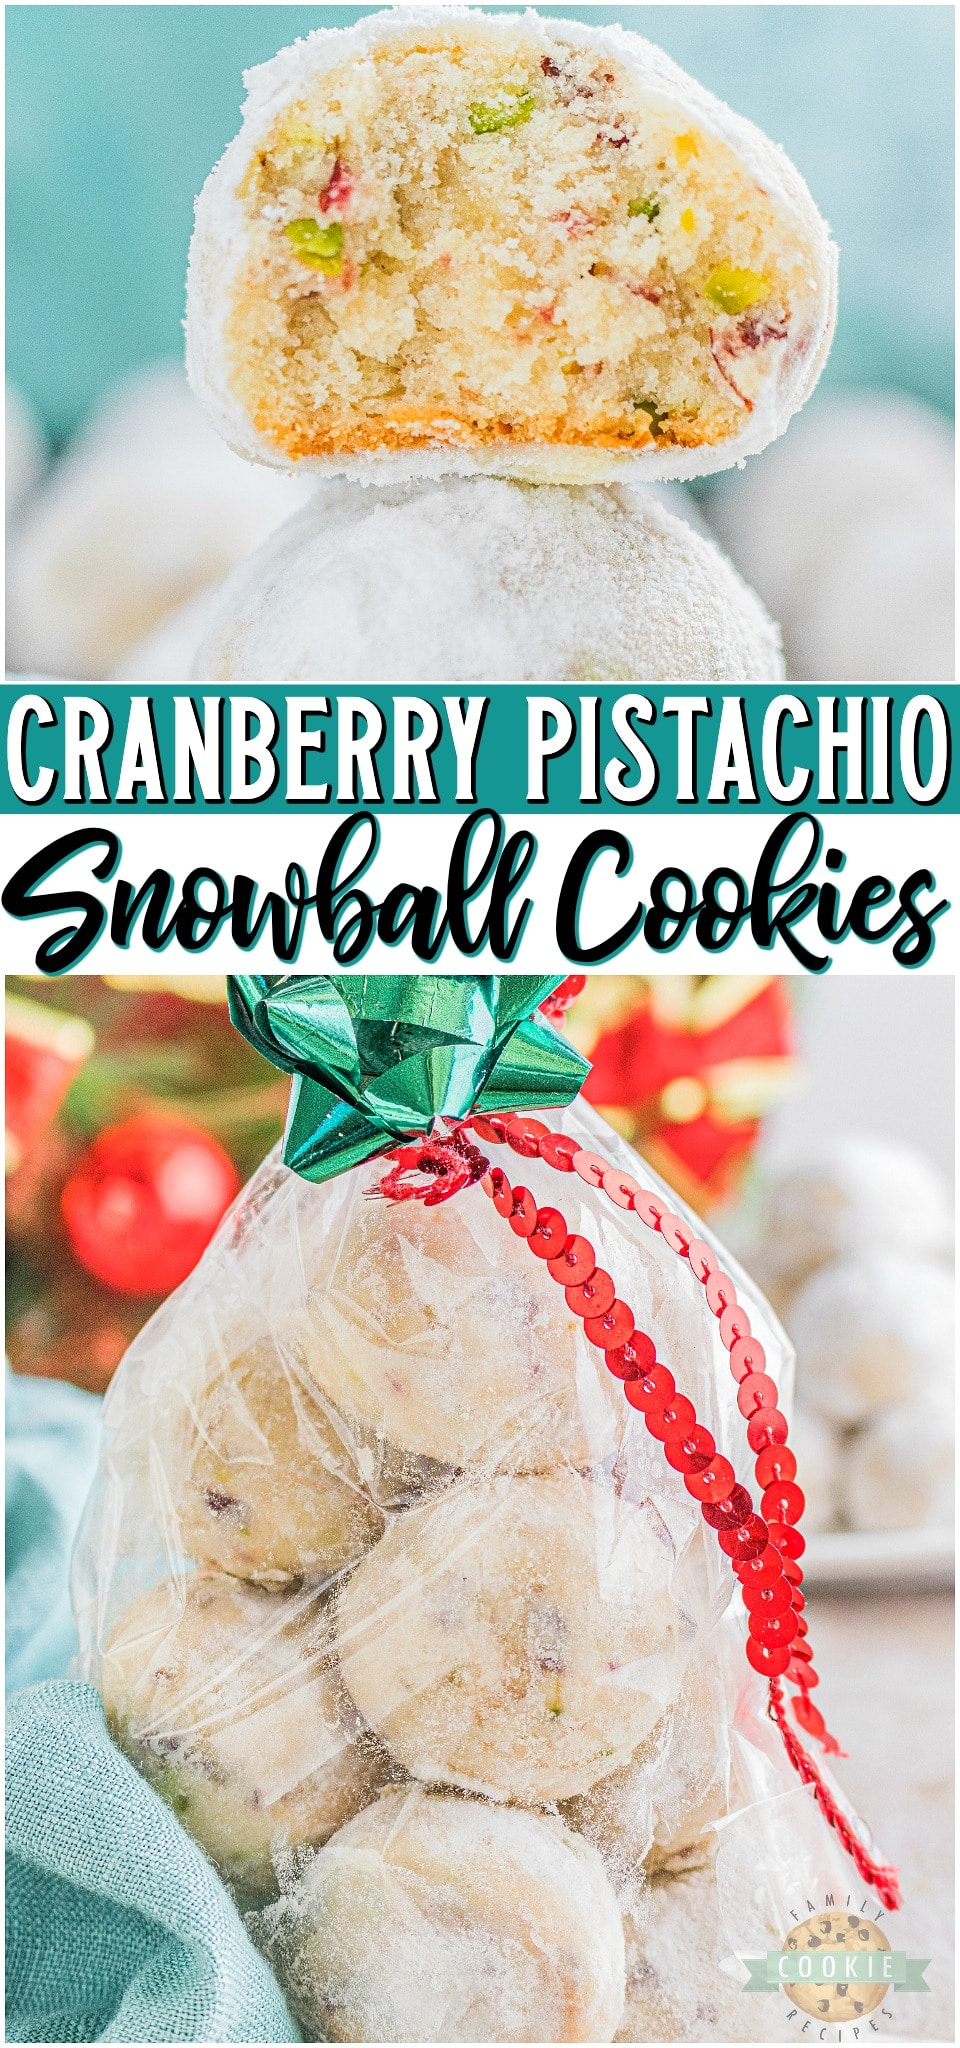 Cranberry Pistachio Snowball Cookiesmade with dried cranberries & pistachios rolled twice in powdered sugar! Perfect holiday Snowball Cookies for cookie trays & gift exchanges.#snowballs #cookies #cranberry #pistachio #Christmas #holidays #cookietray #easyrecipe from FAMILY COOKIE RECIPES via @familycookierecipes